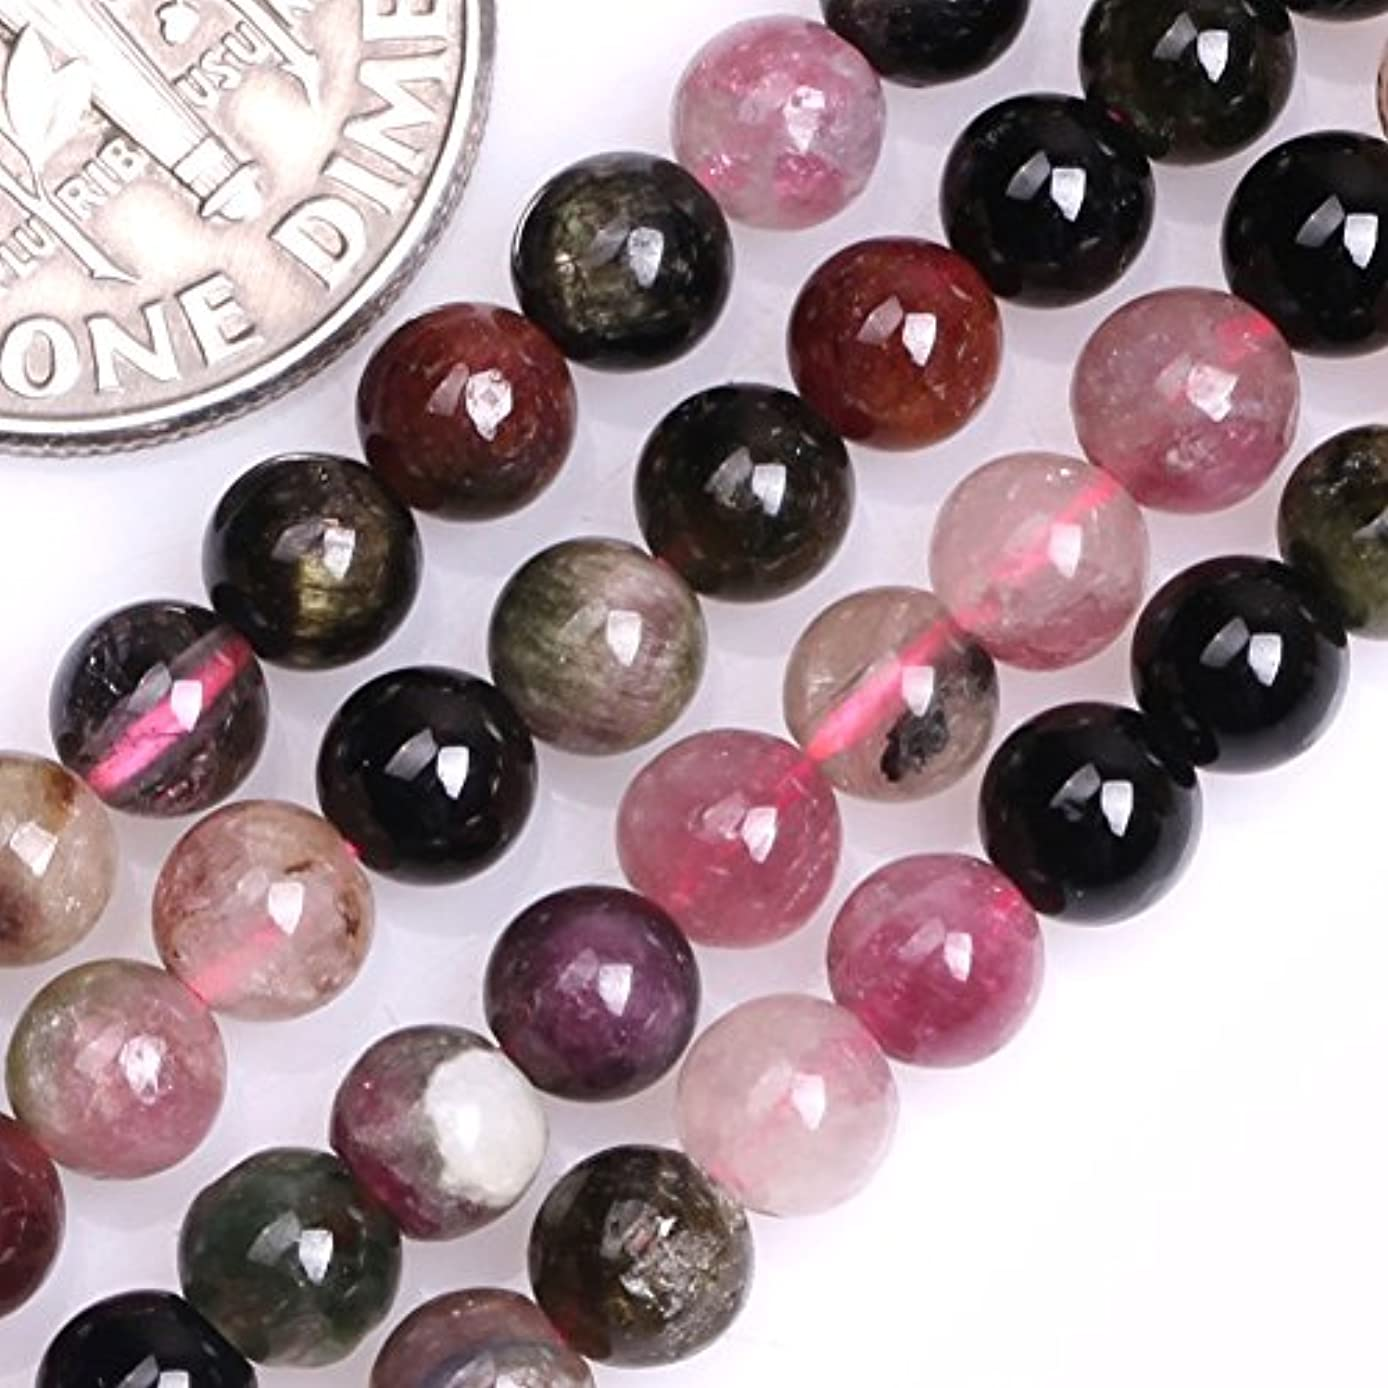 GEM-inside Tourmaline Gemstone Loose Beads Natural 4mm Round Energy Stone Power Beads For Jewelry Making 15